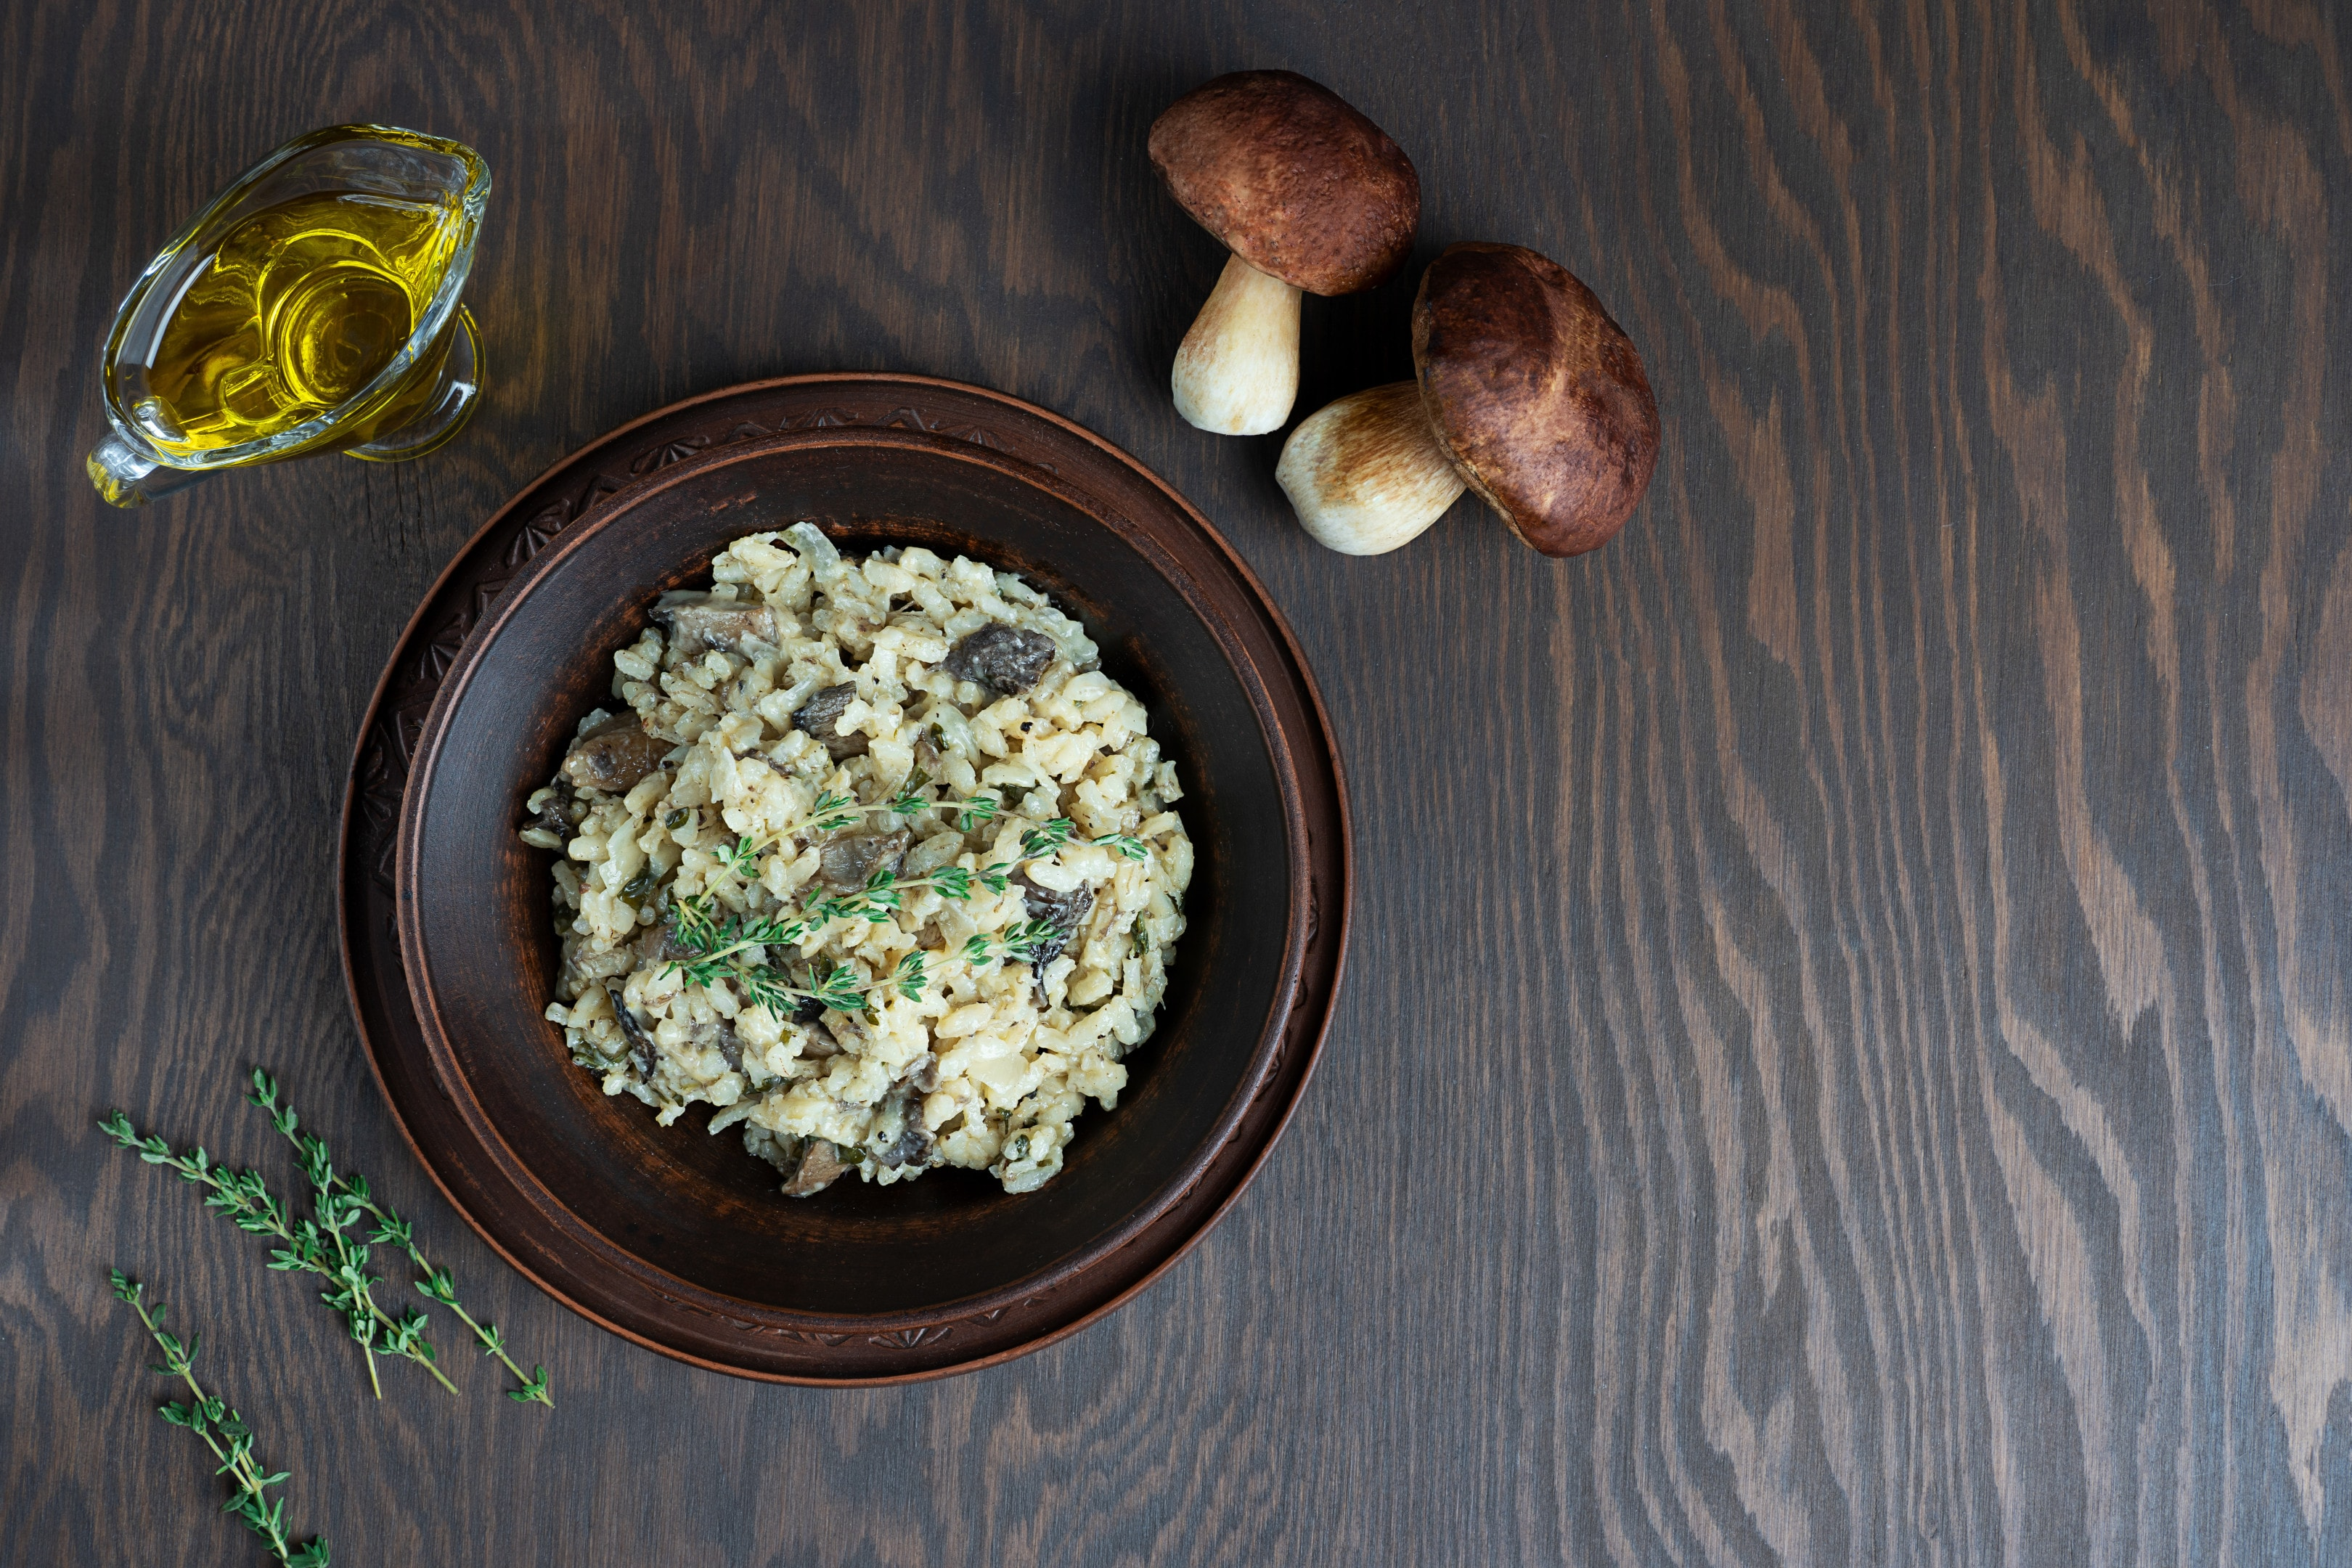 Risotto with arborio rice broth mushrooms thyme on wooden table